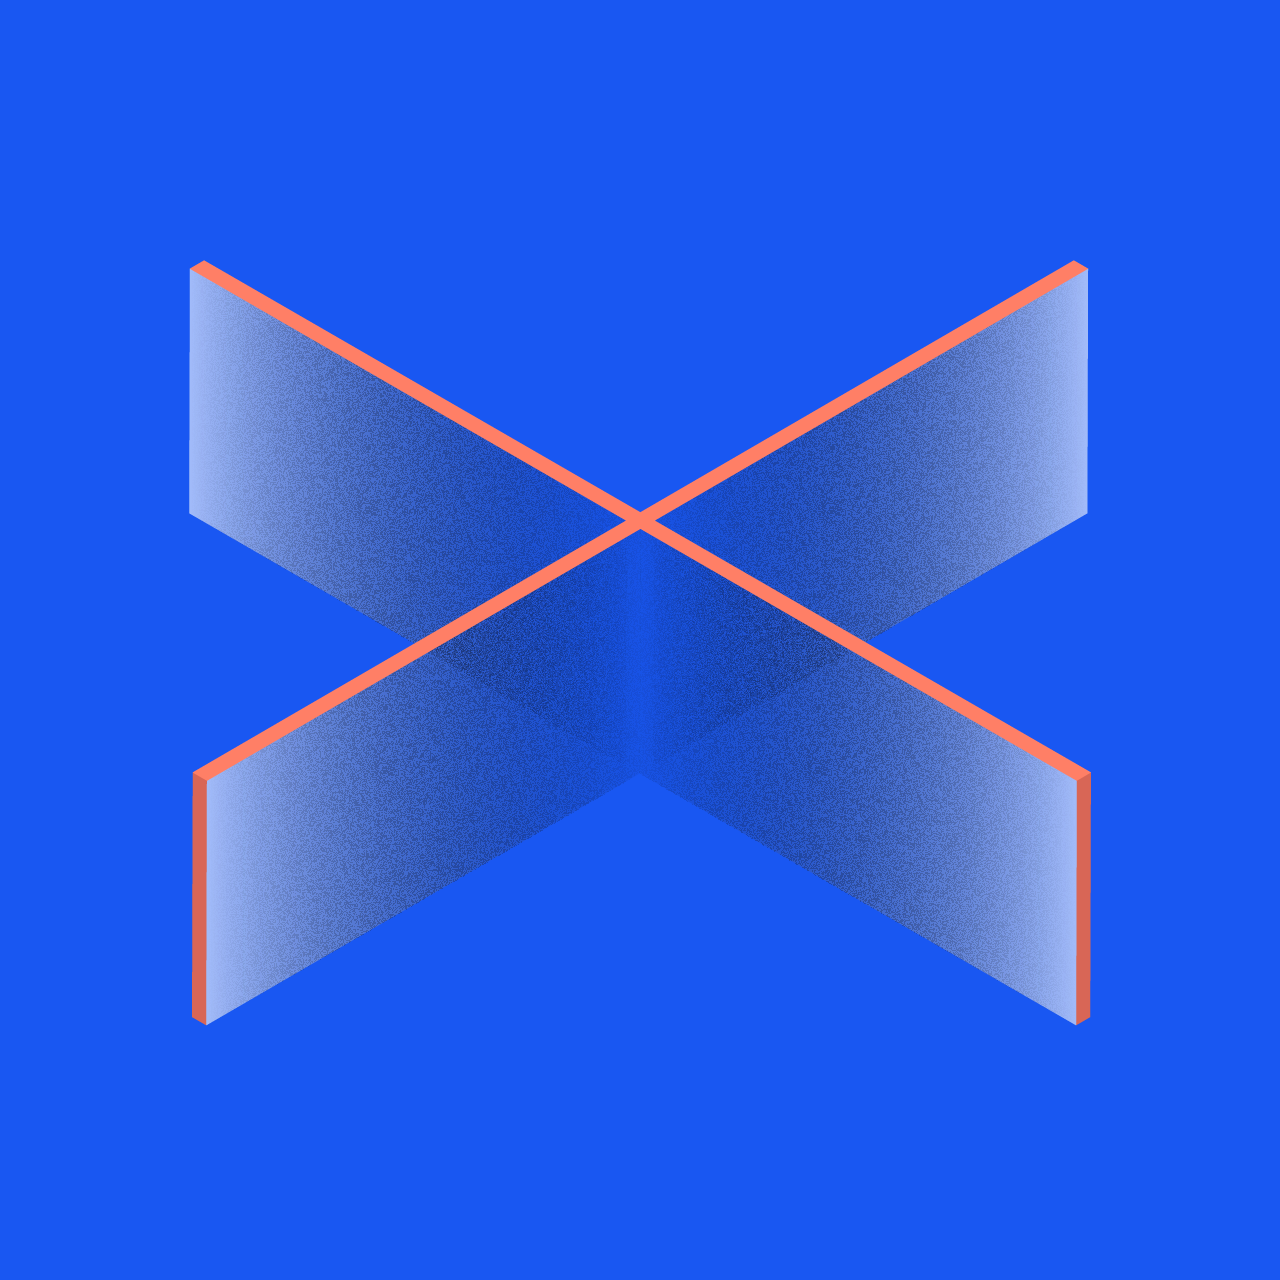 My X submission for 36 Days of Type